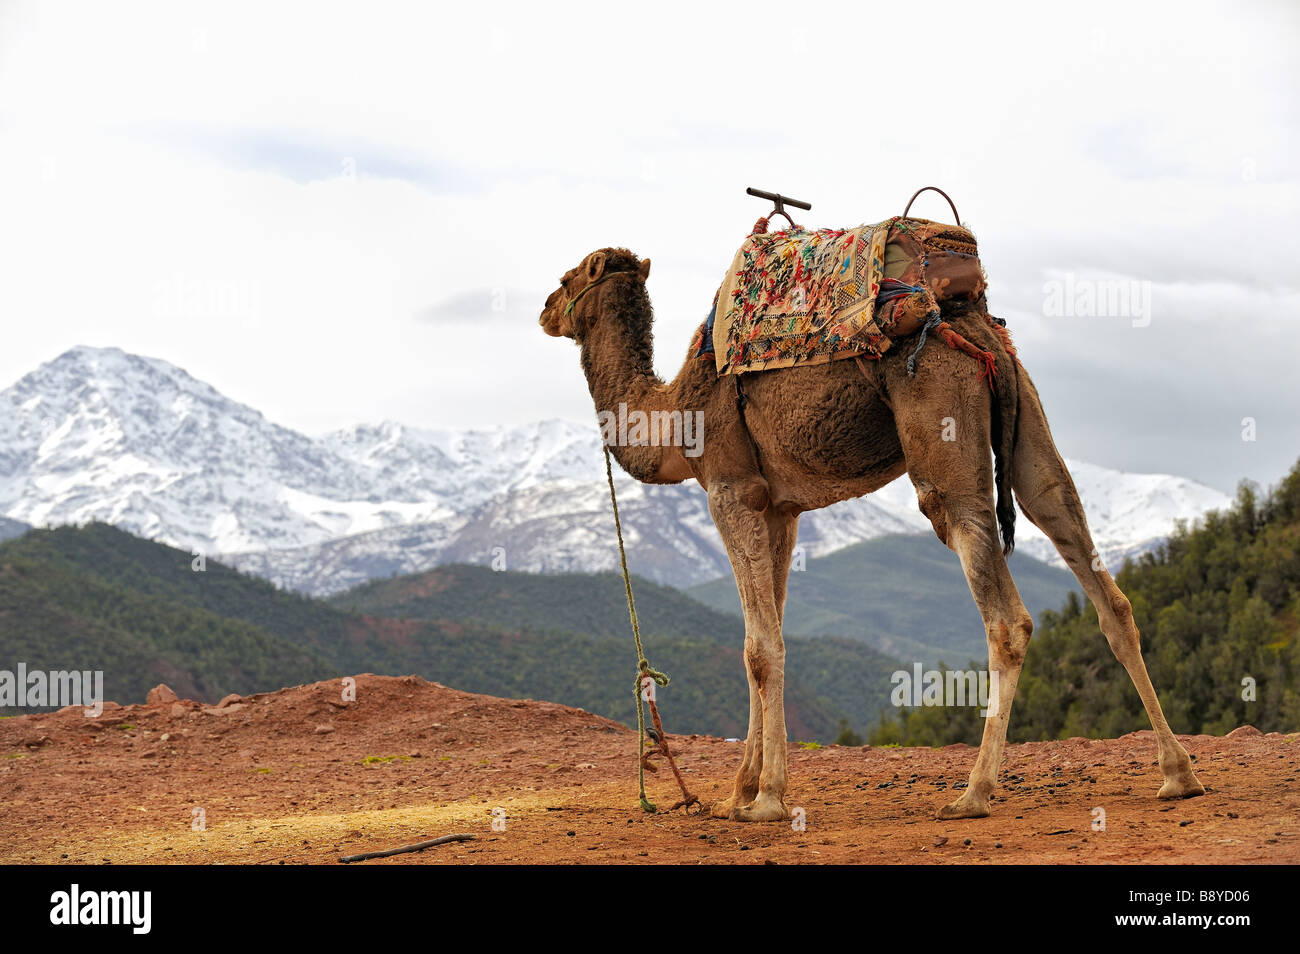 Dromedary contemplating the snowy mountains of the Atlas, Ourika Valley, Morocco - Stock Image